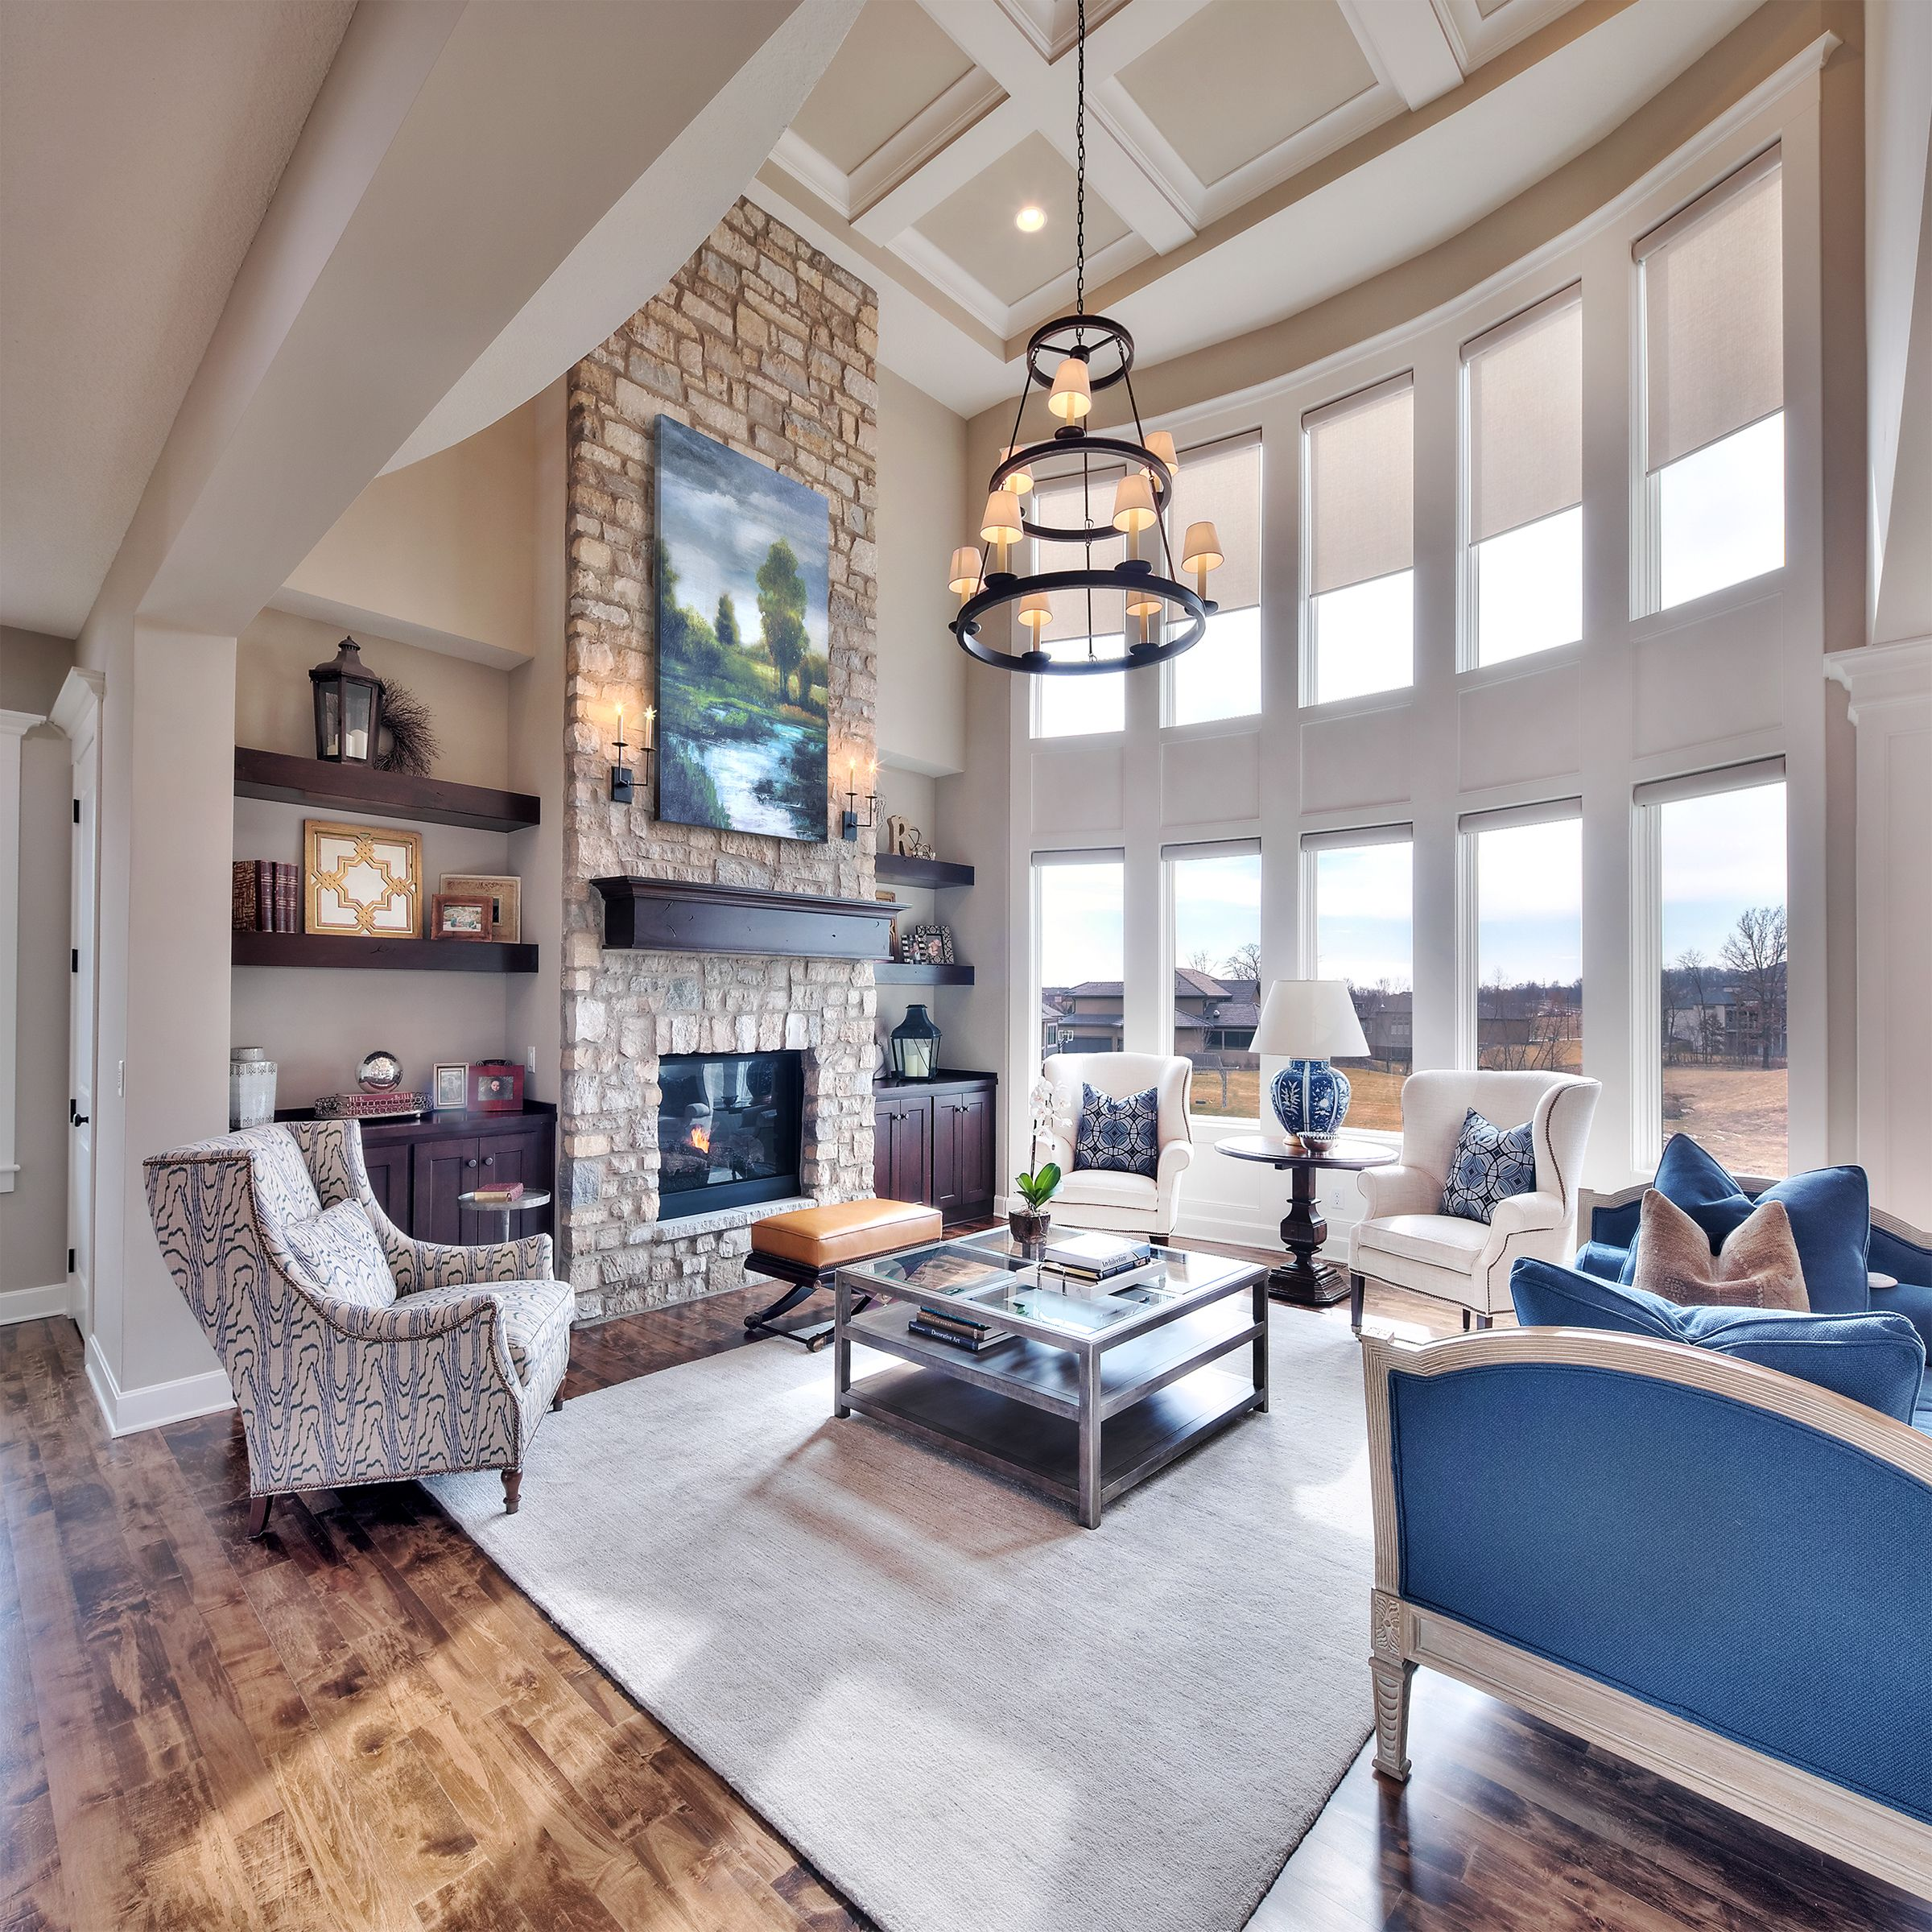 Floor To Ceiling Stone Fireplace With Huge Windows High Ceiling